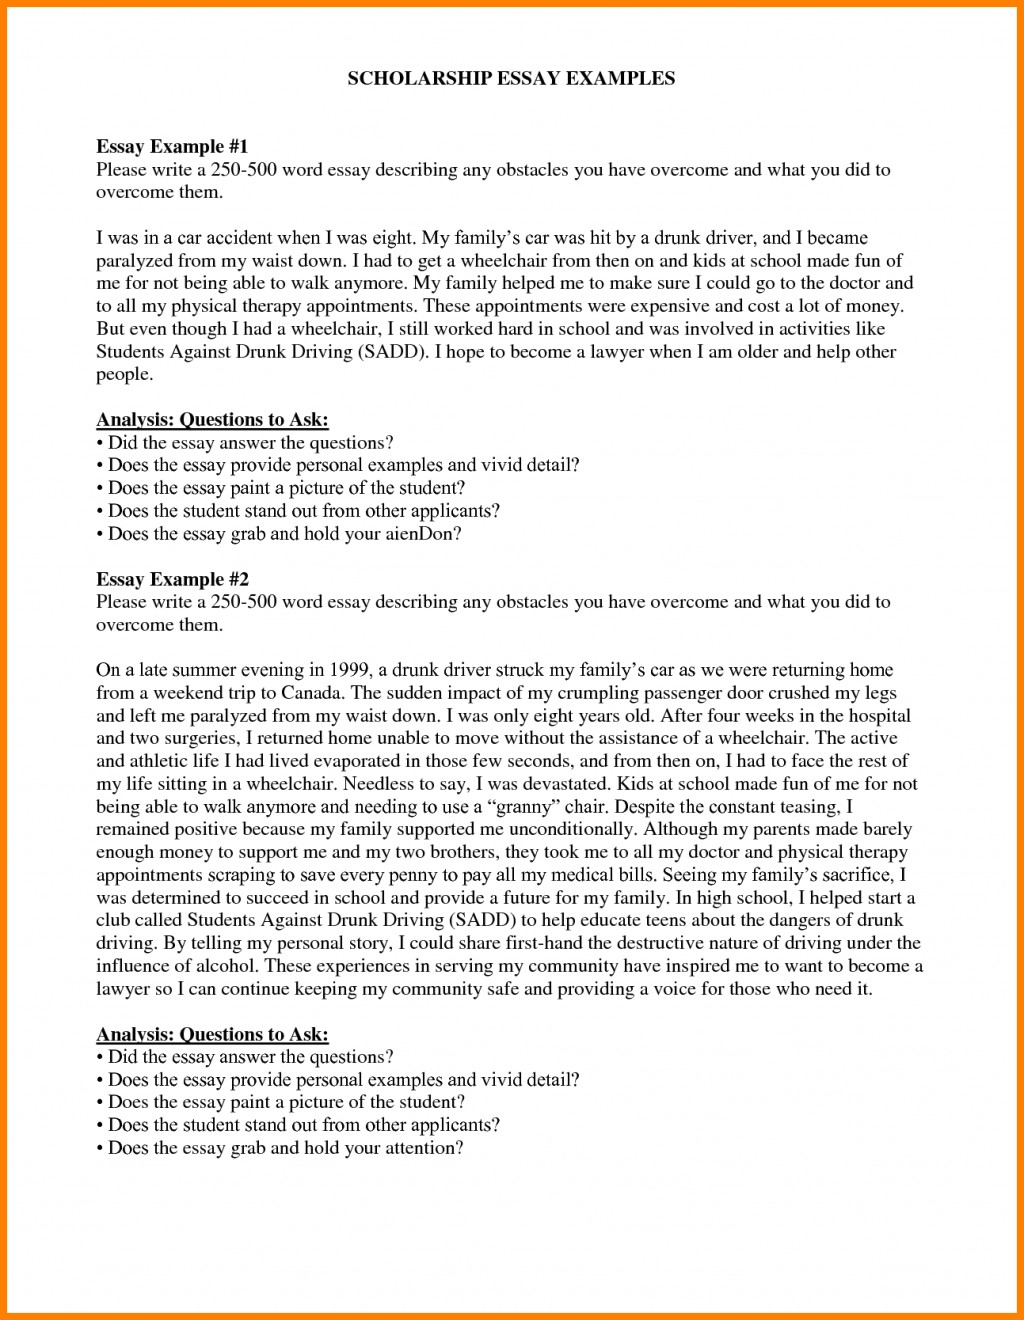 027 Example Scholarshipon How To Write Essay For Simply Tossed Aside Because The Time You Tips Inside Sales Volume Staggering Scholarship Application Samples Why Deserve Questions Large